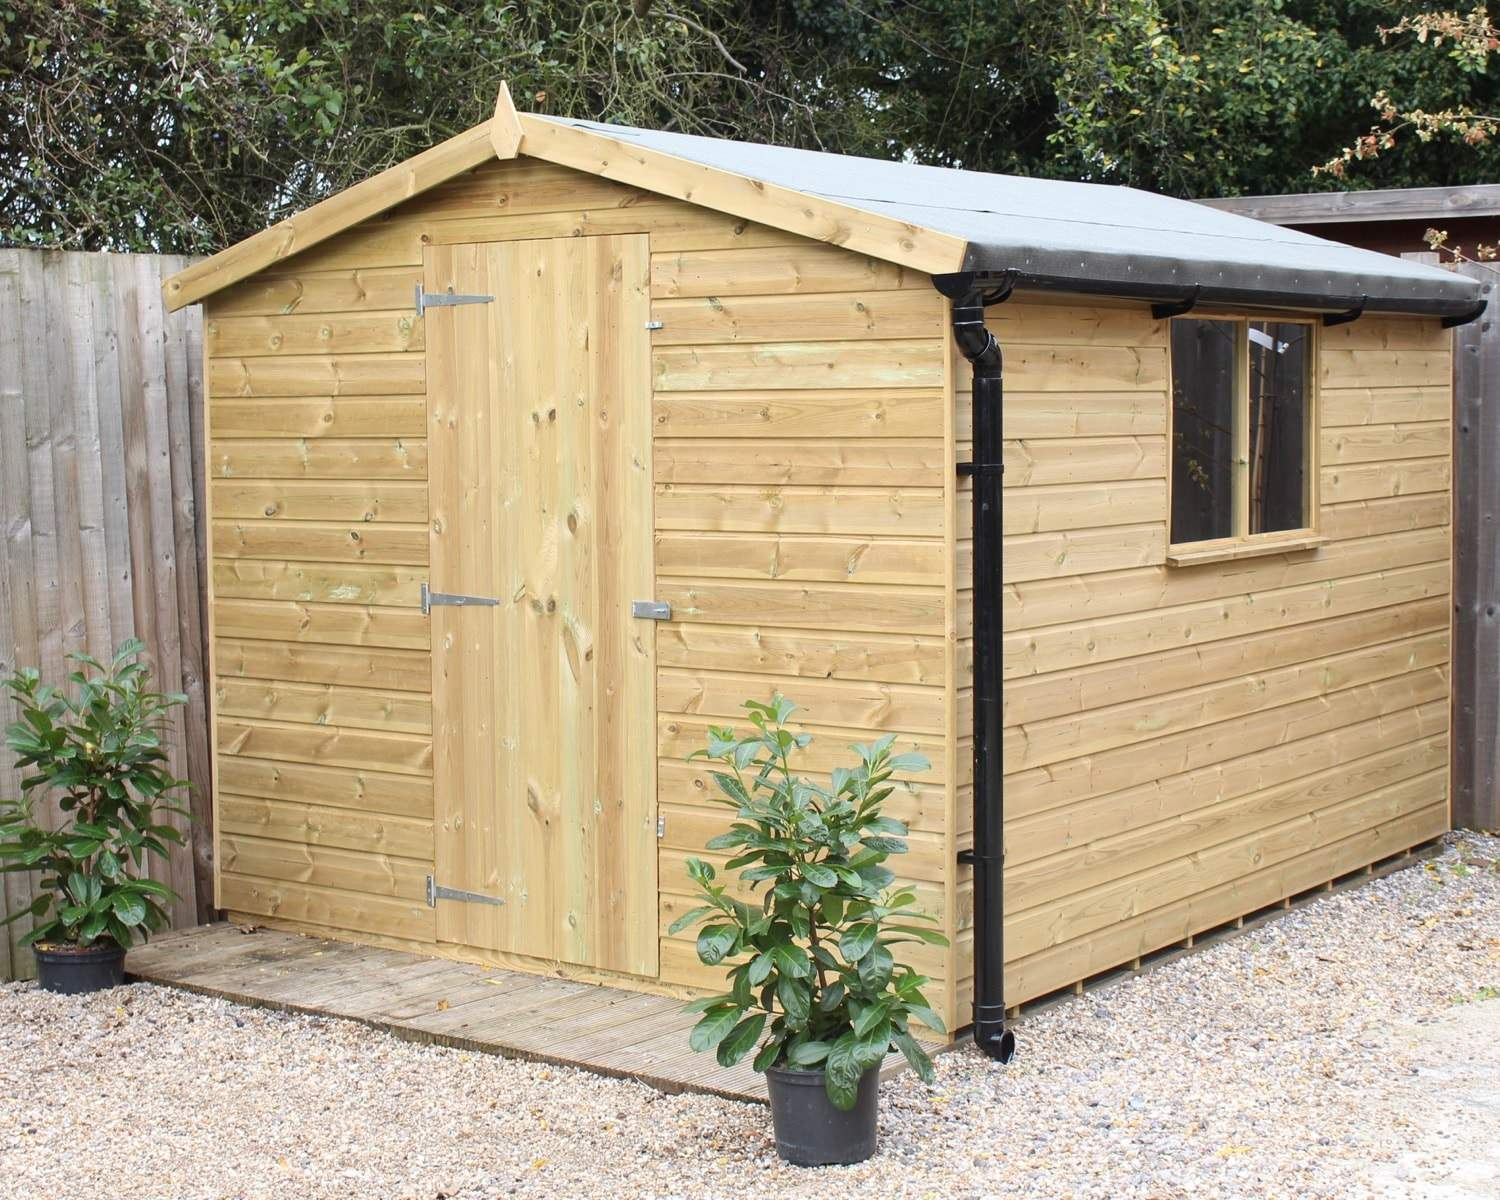 Tips for Insulating your Garden Shed